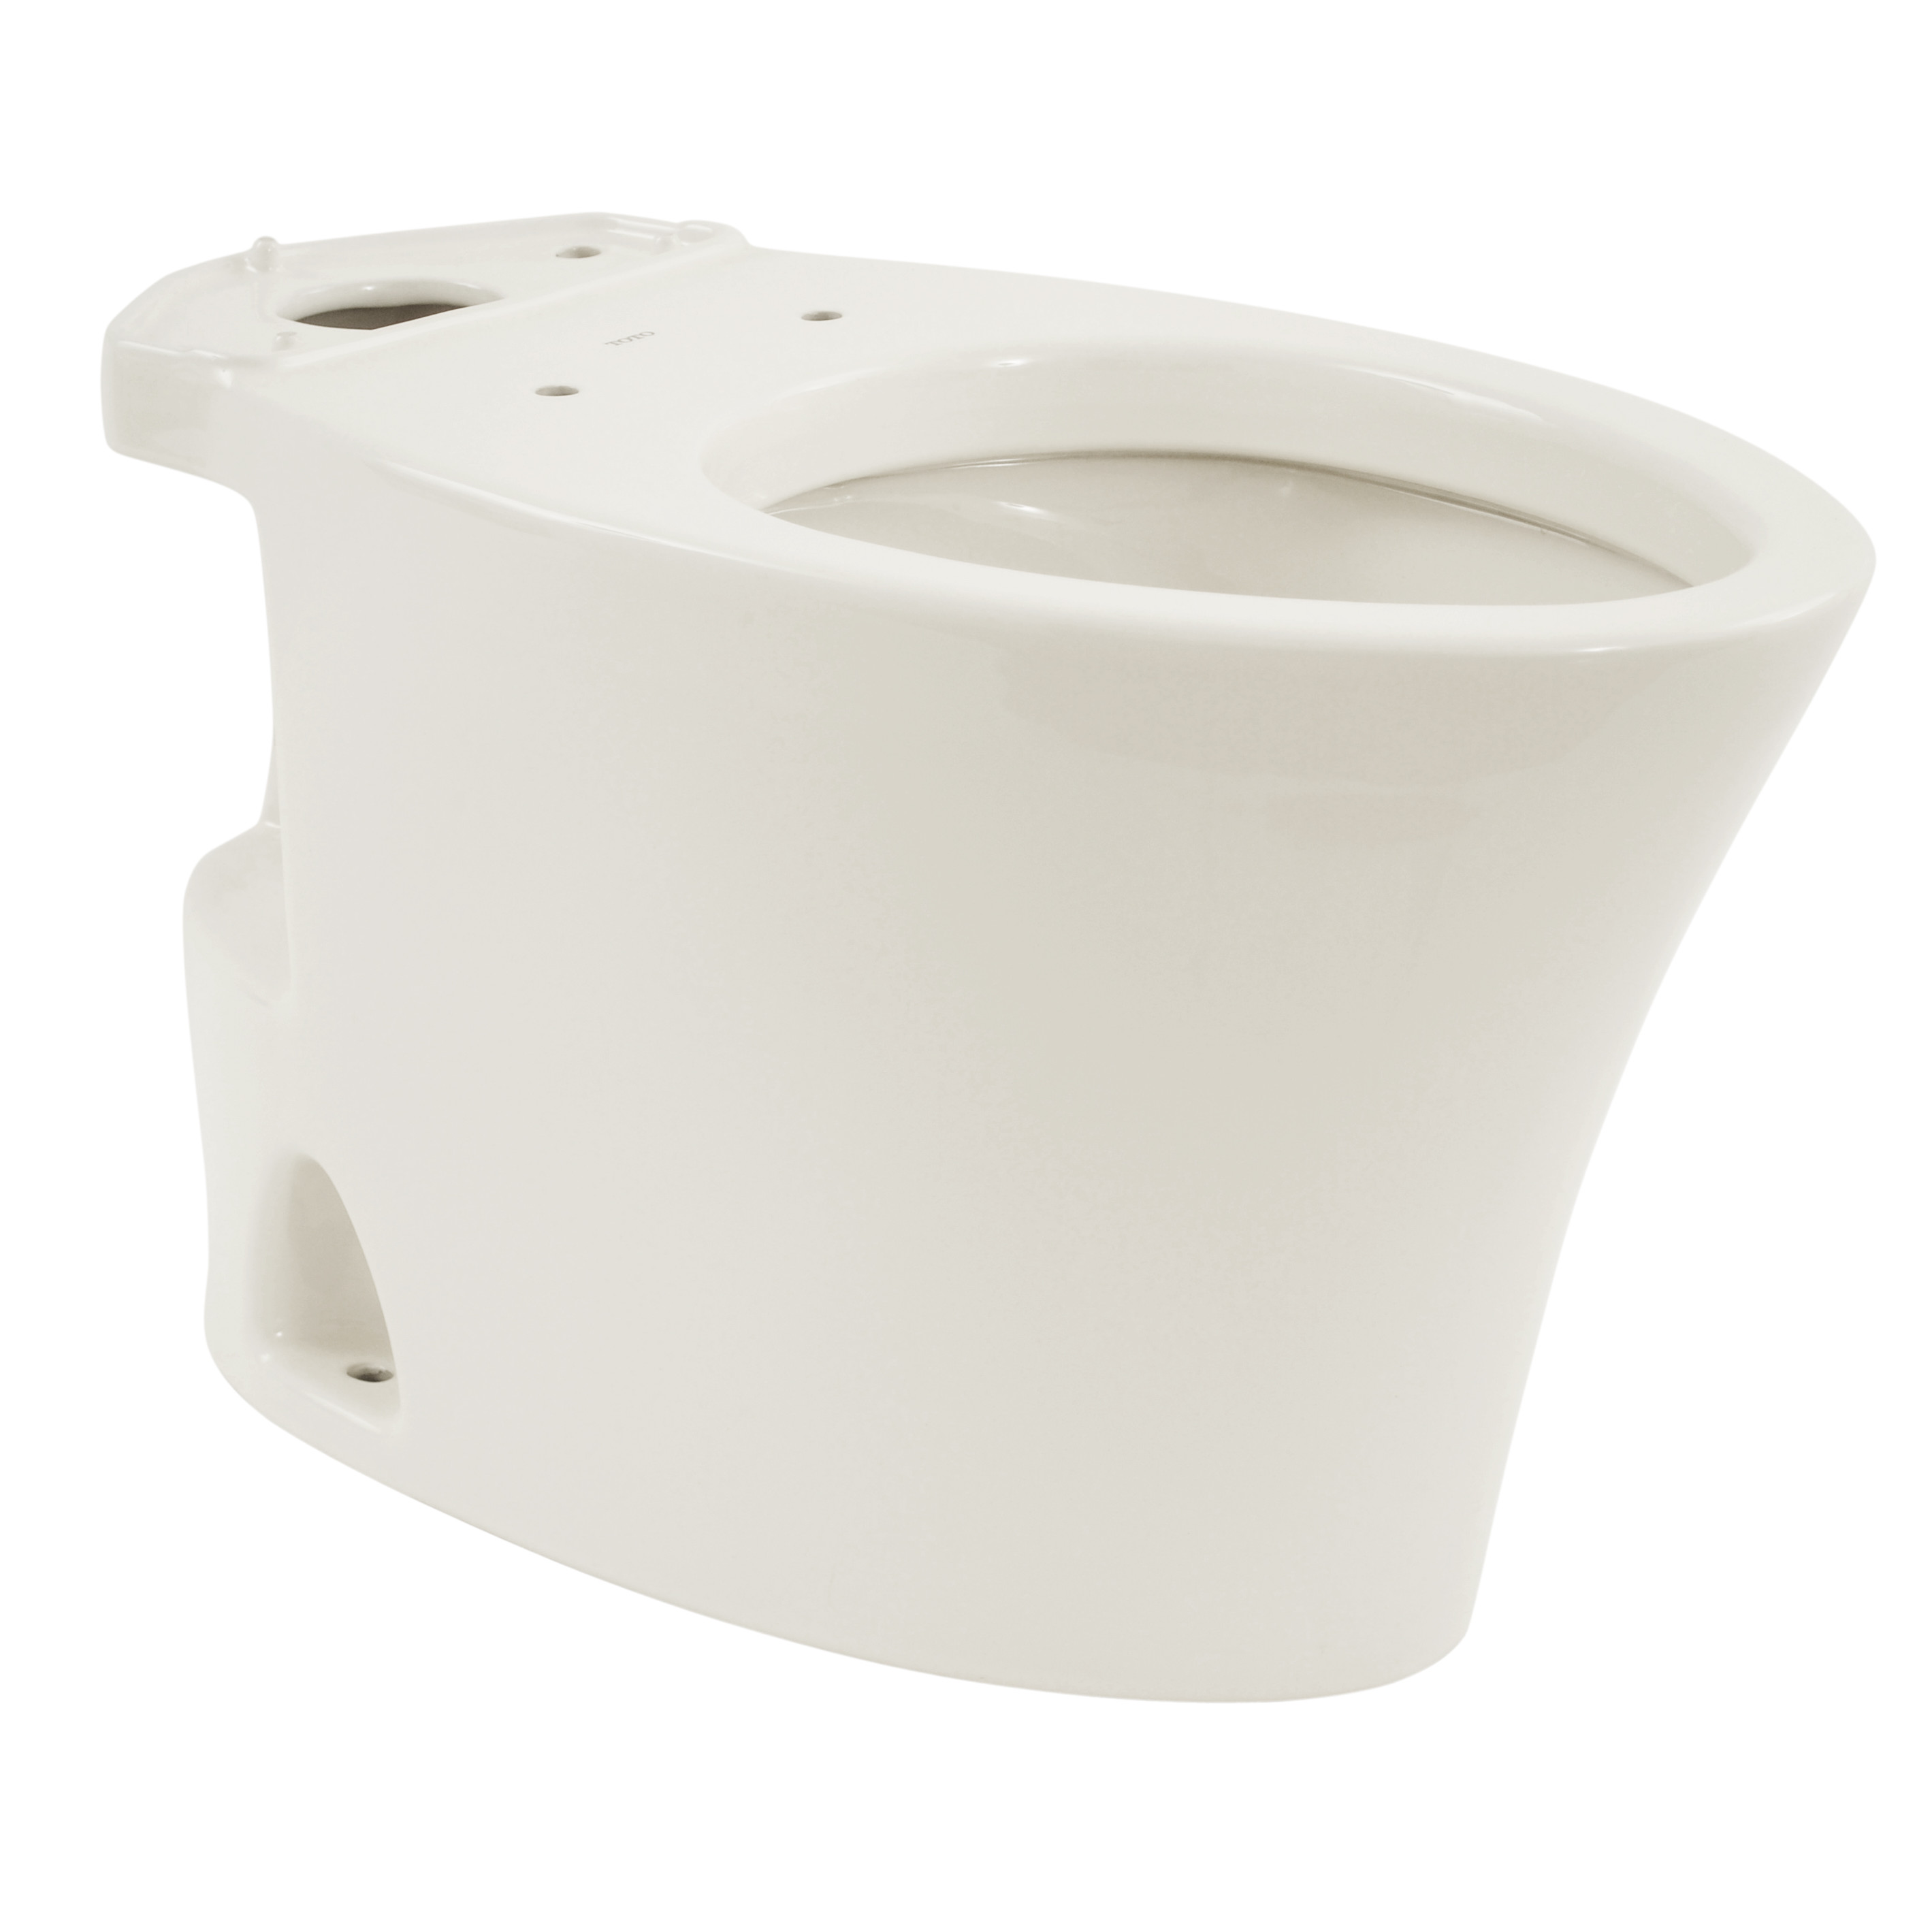 high end toilets toto toilet toto bidet toilets